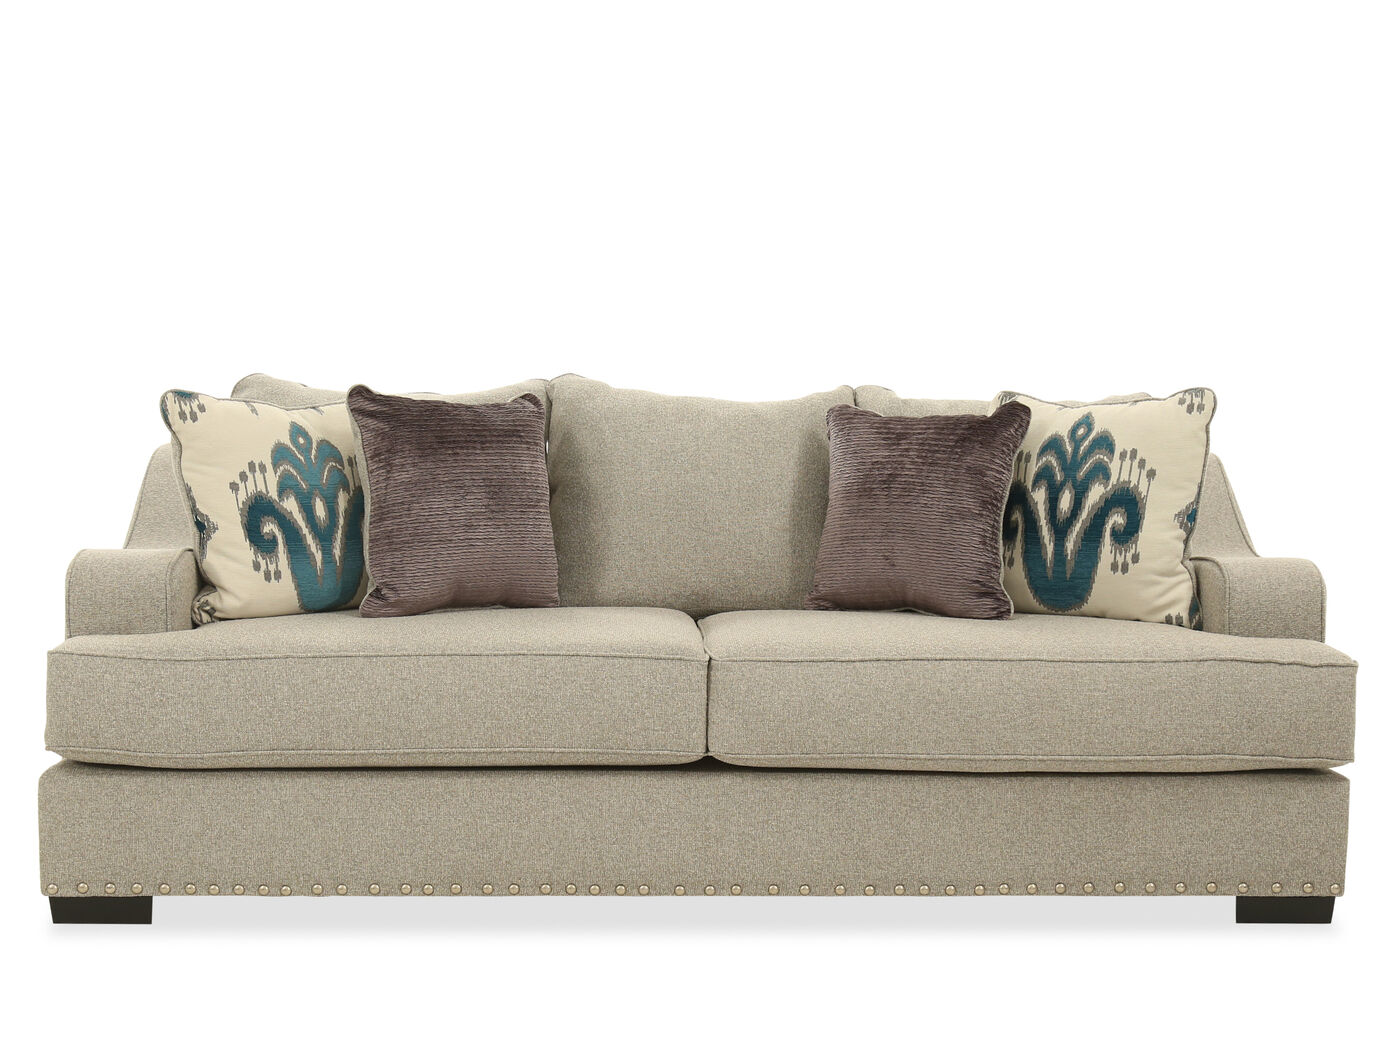 Low Profile Sofa Bespoke Curved Low Profile Sofa With